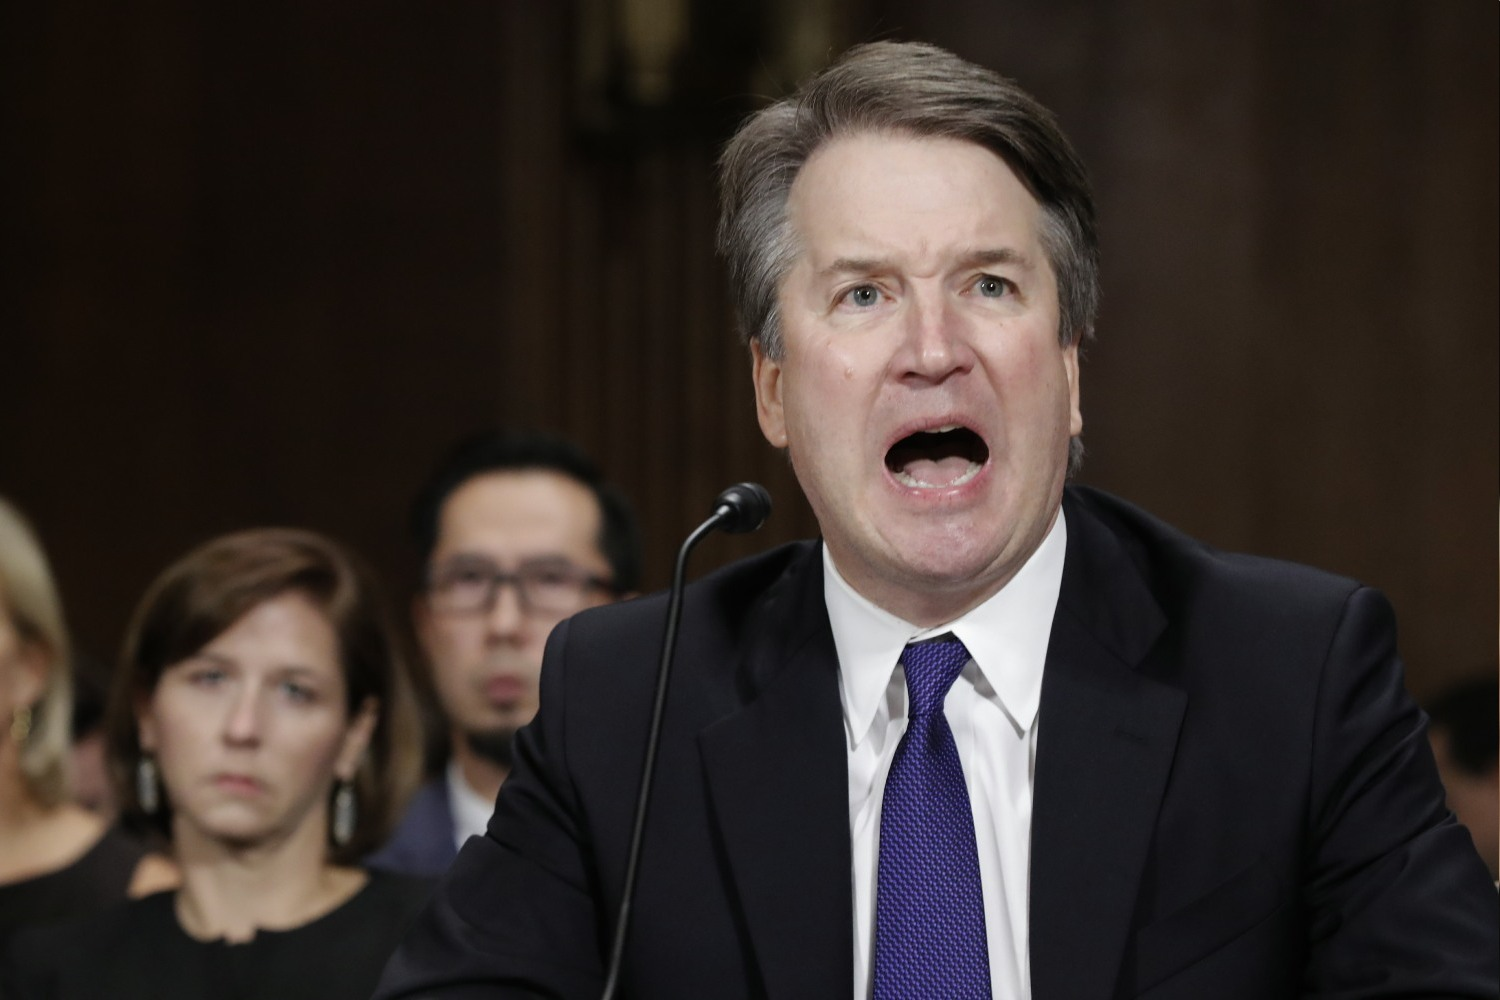 Drunk predator Brett Kavanaugh ruled that mail-in votes shouldn't count